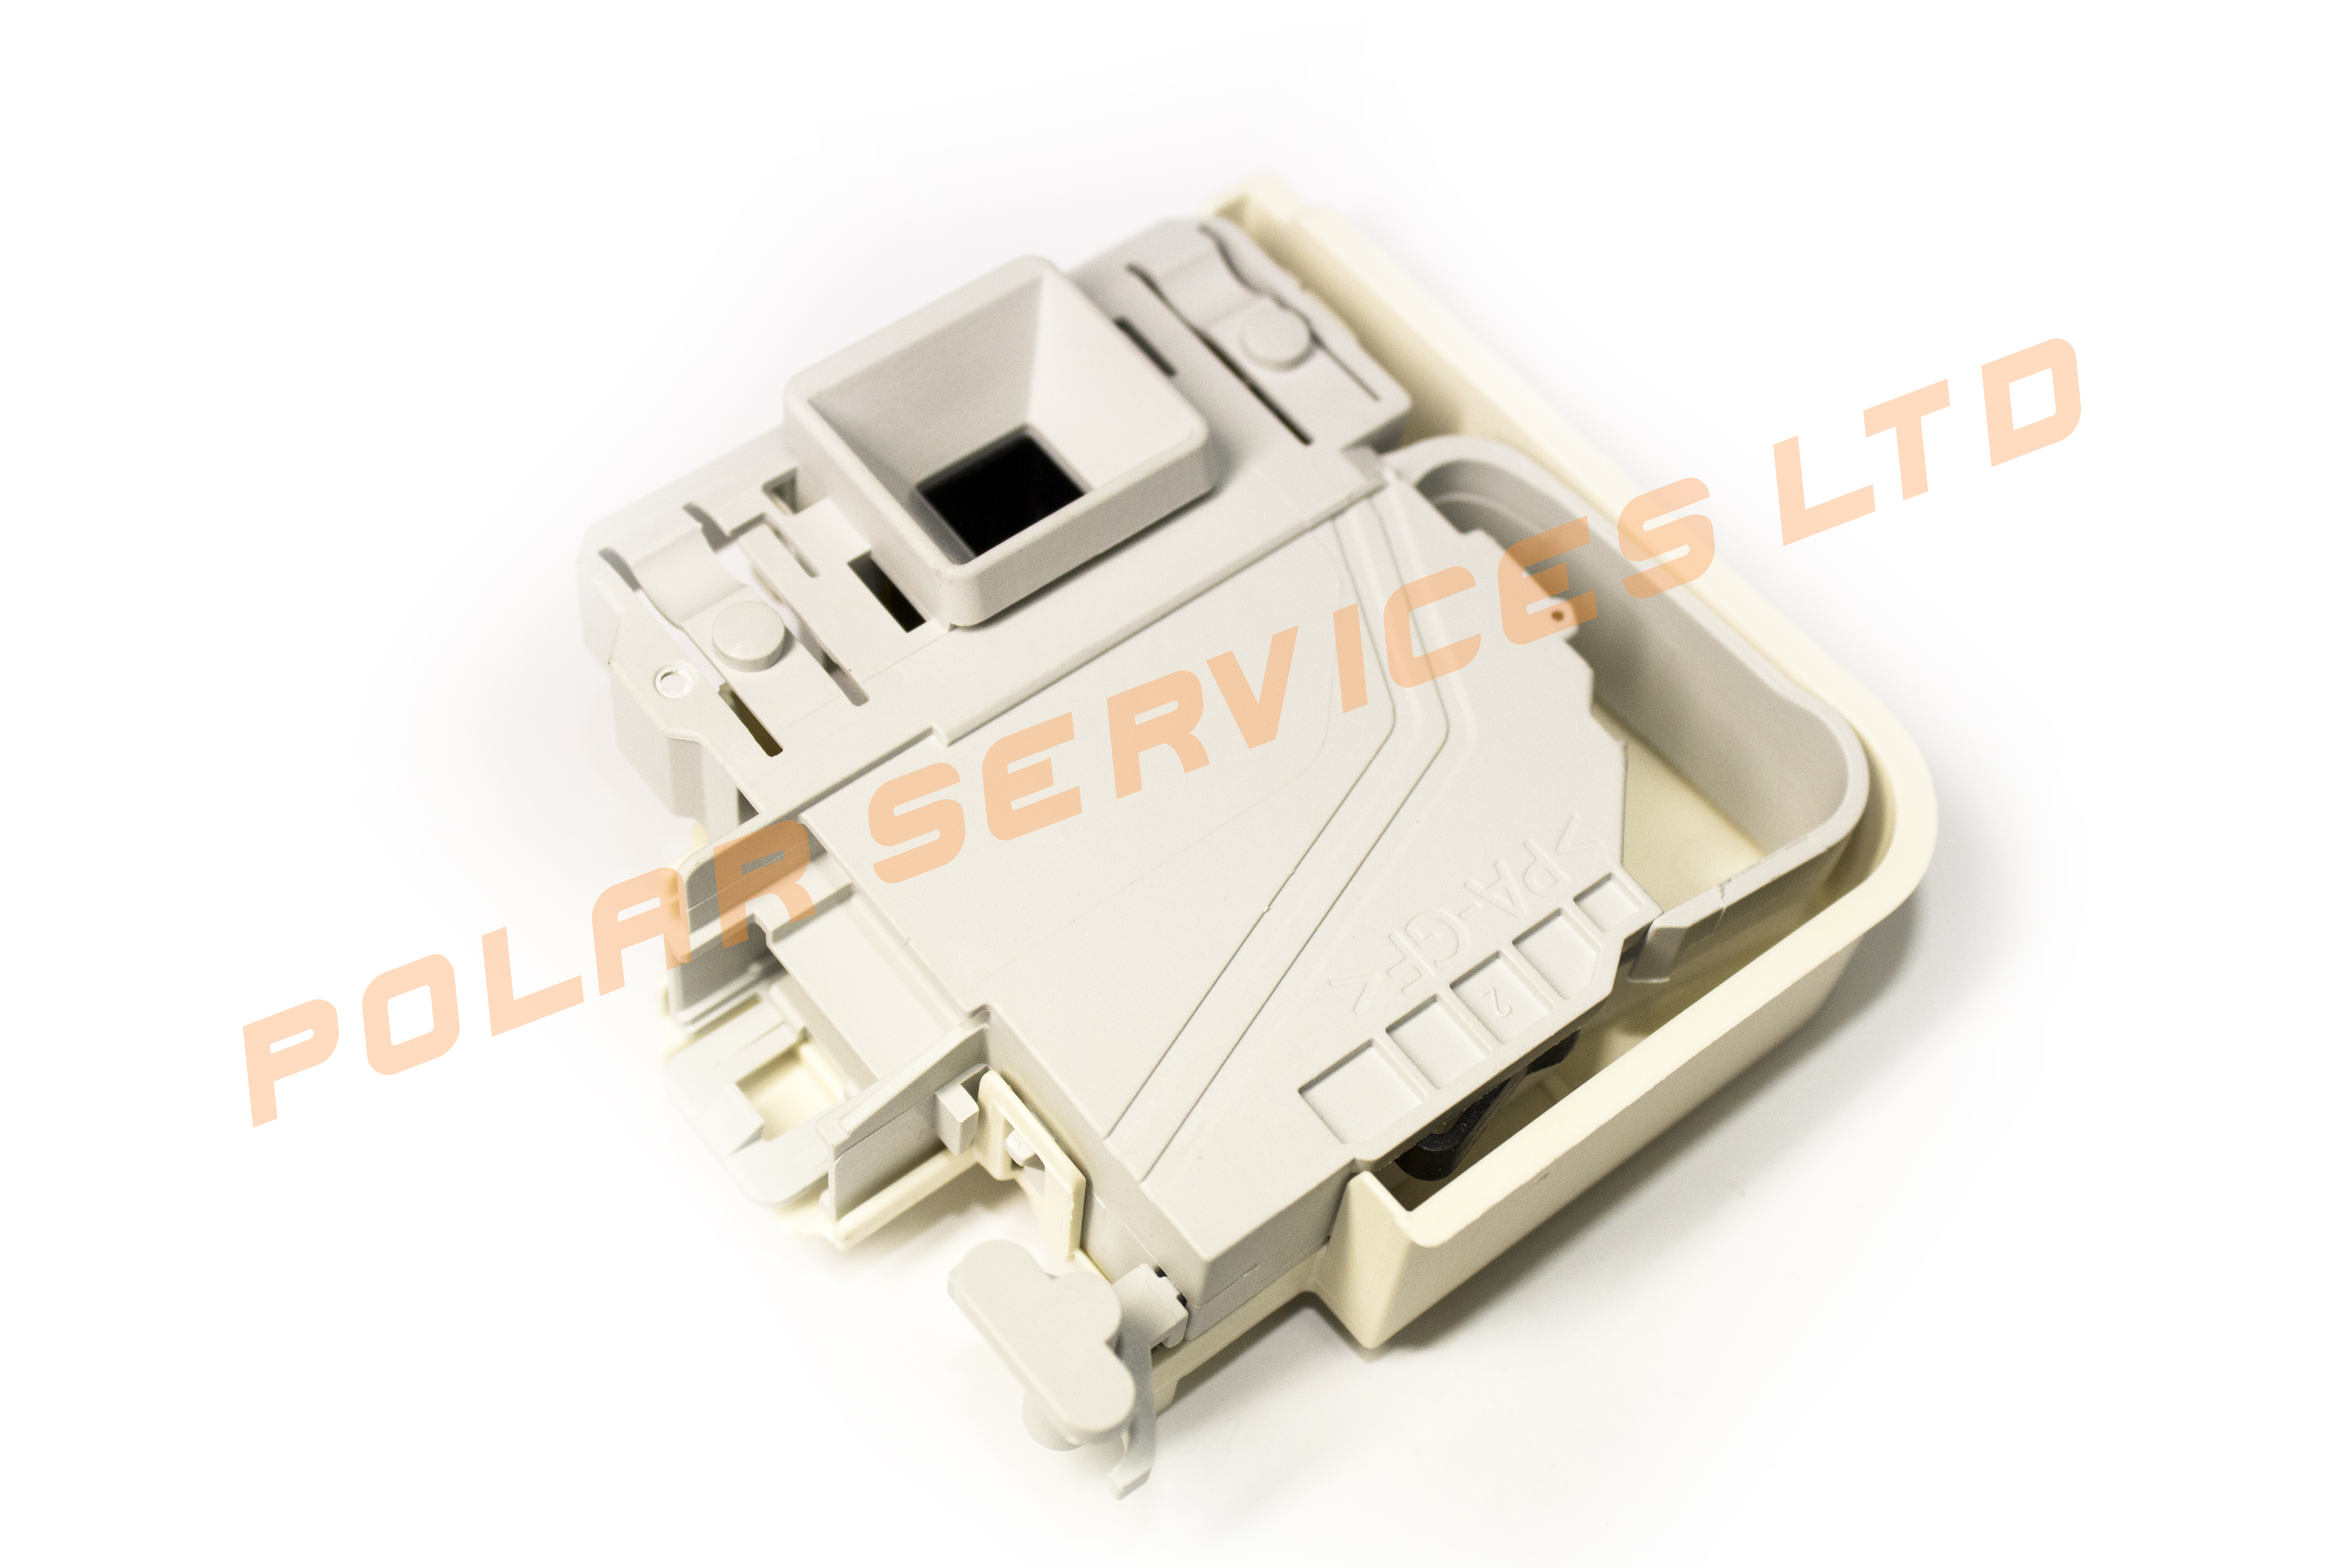 WASHING MACHINE DOOR LOCK BOSCH 616876/ 615834 ORIGINAL Malta, 								Washing Machine Malta, Polar Services LTD Malta Malta